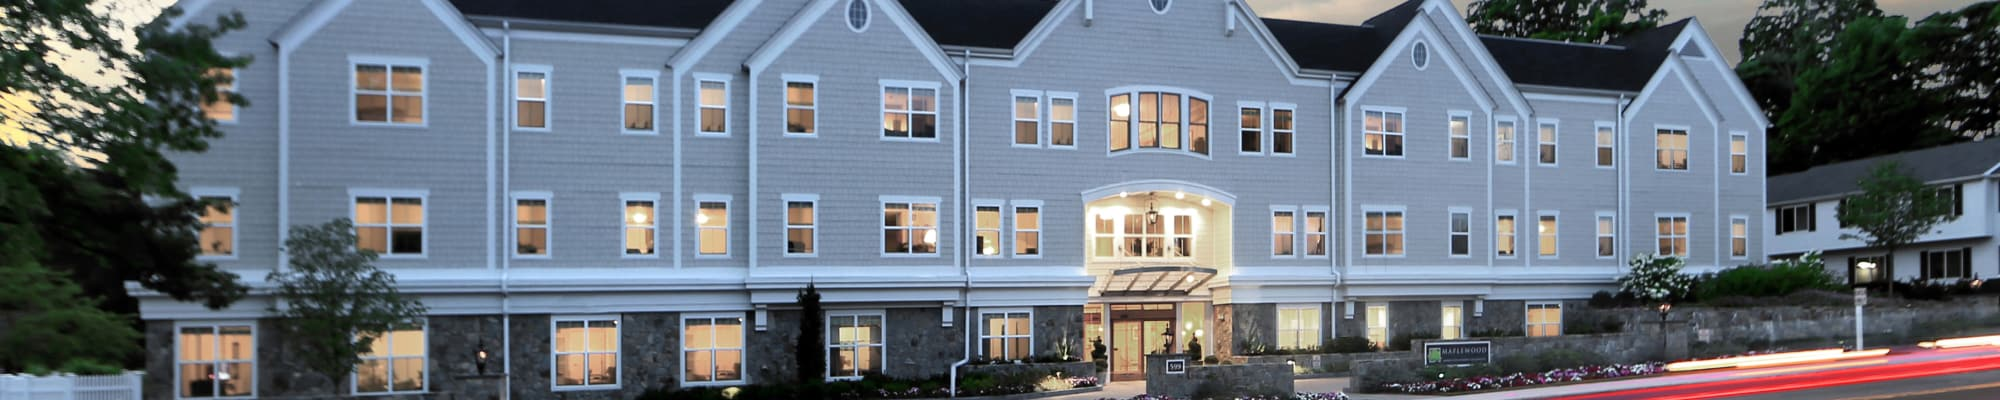 Reviews at Maplewood at Darien in Darien, Connecticut